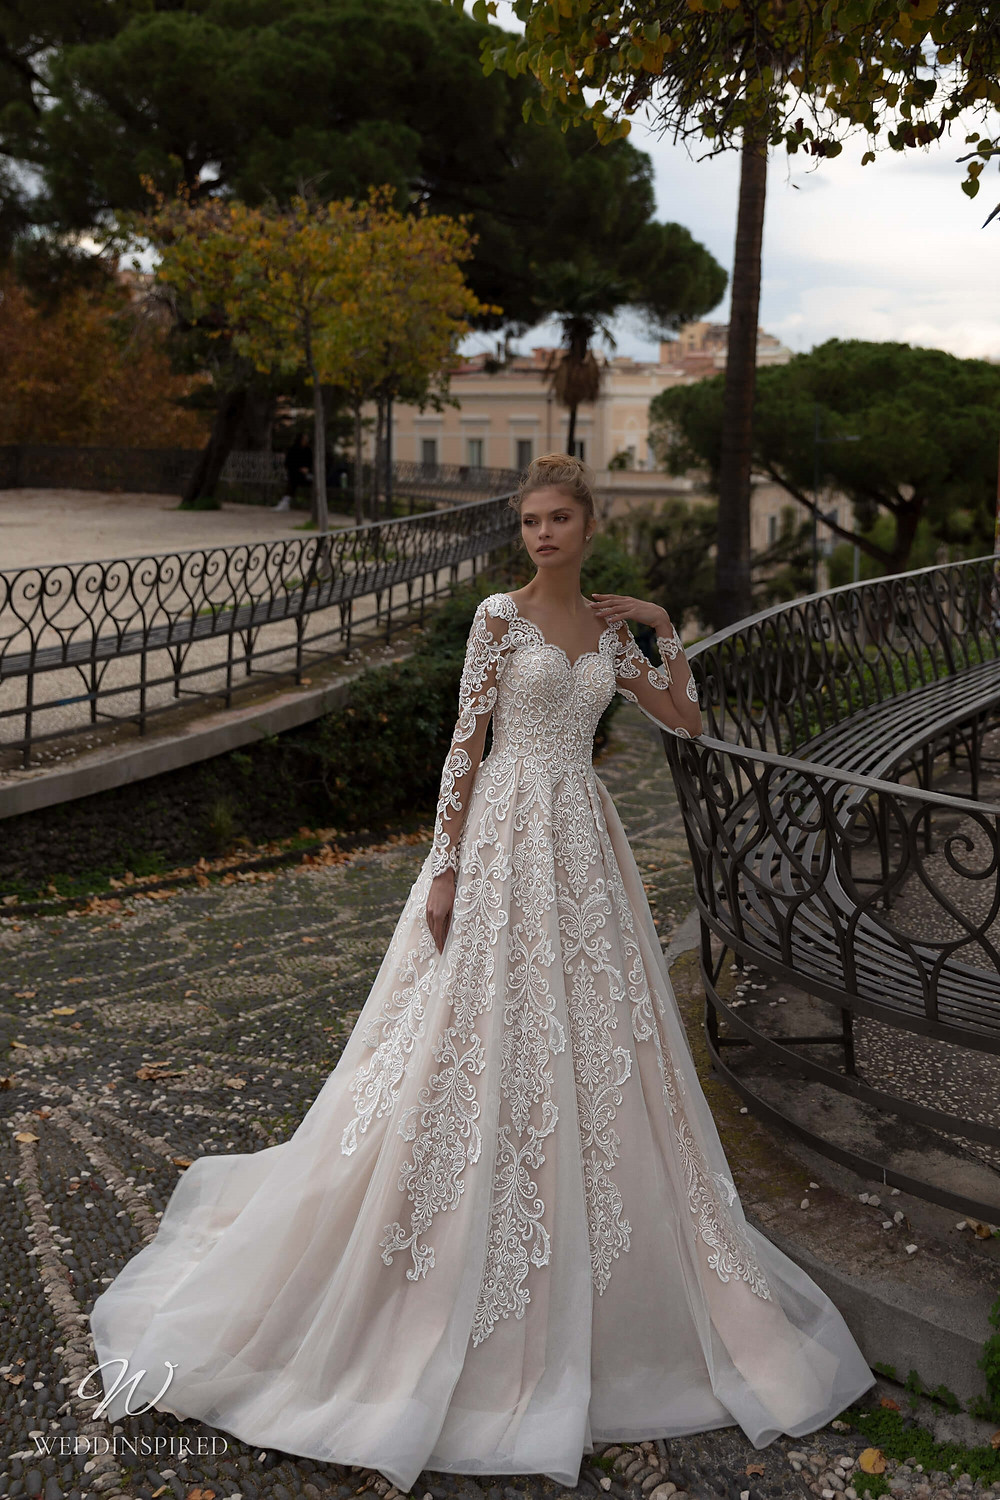 A Naviblue lace A-line wedding dress with long lace sleeves